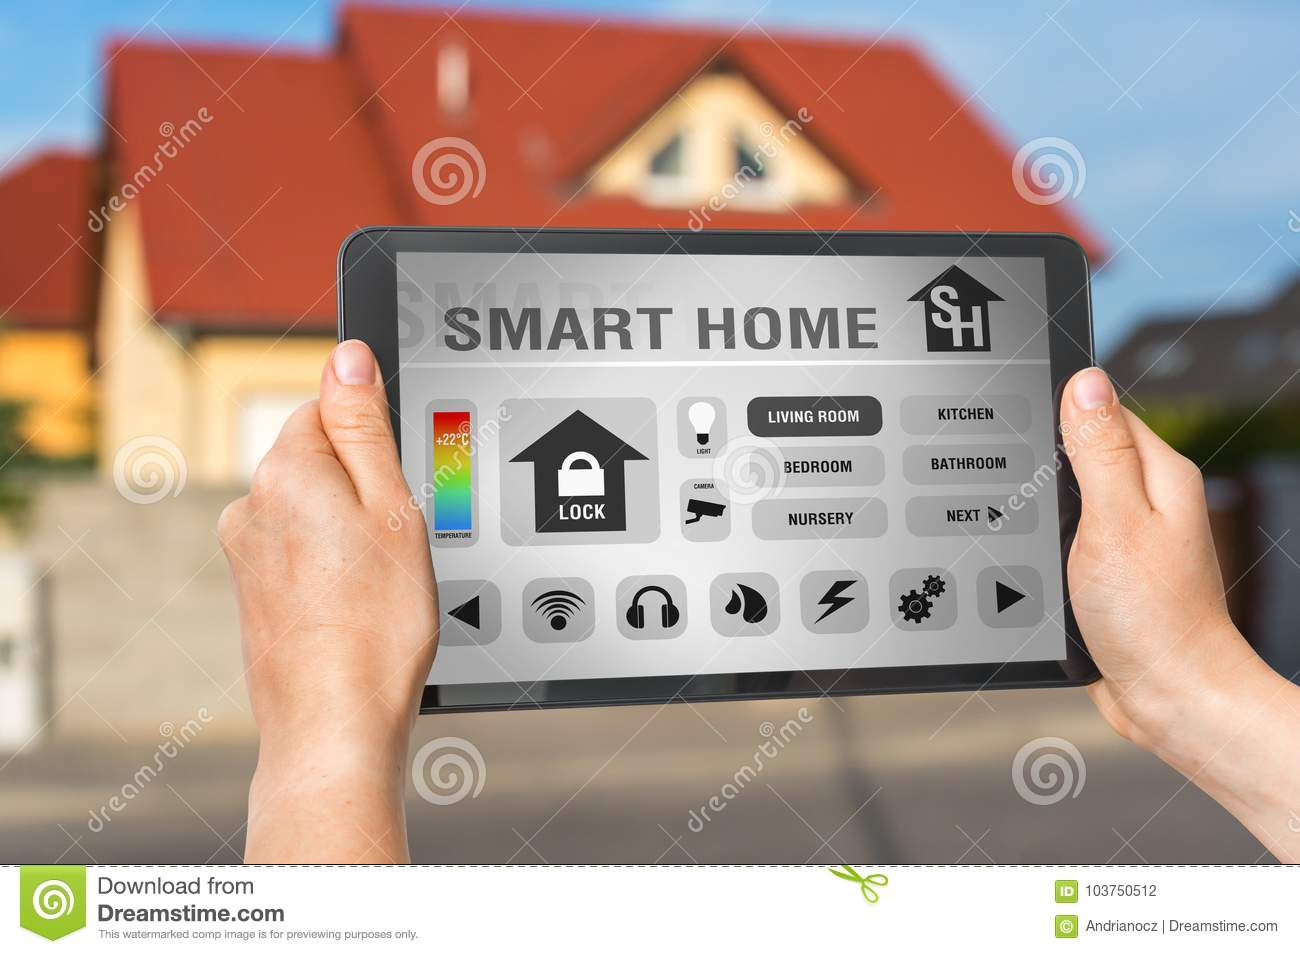 Smart Home Control App On Tablet - Smart Home Concept Stock Photo ...